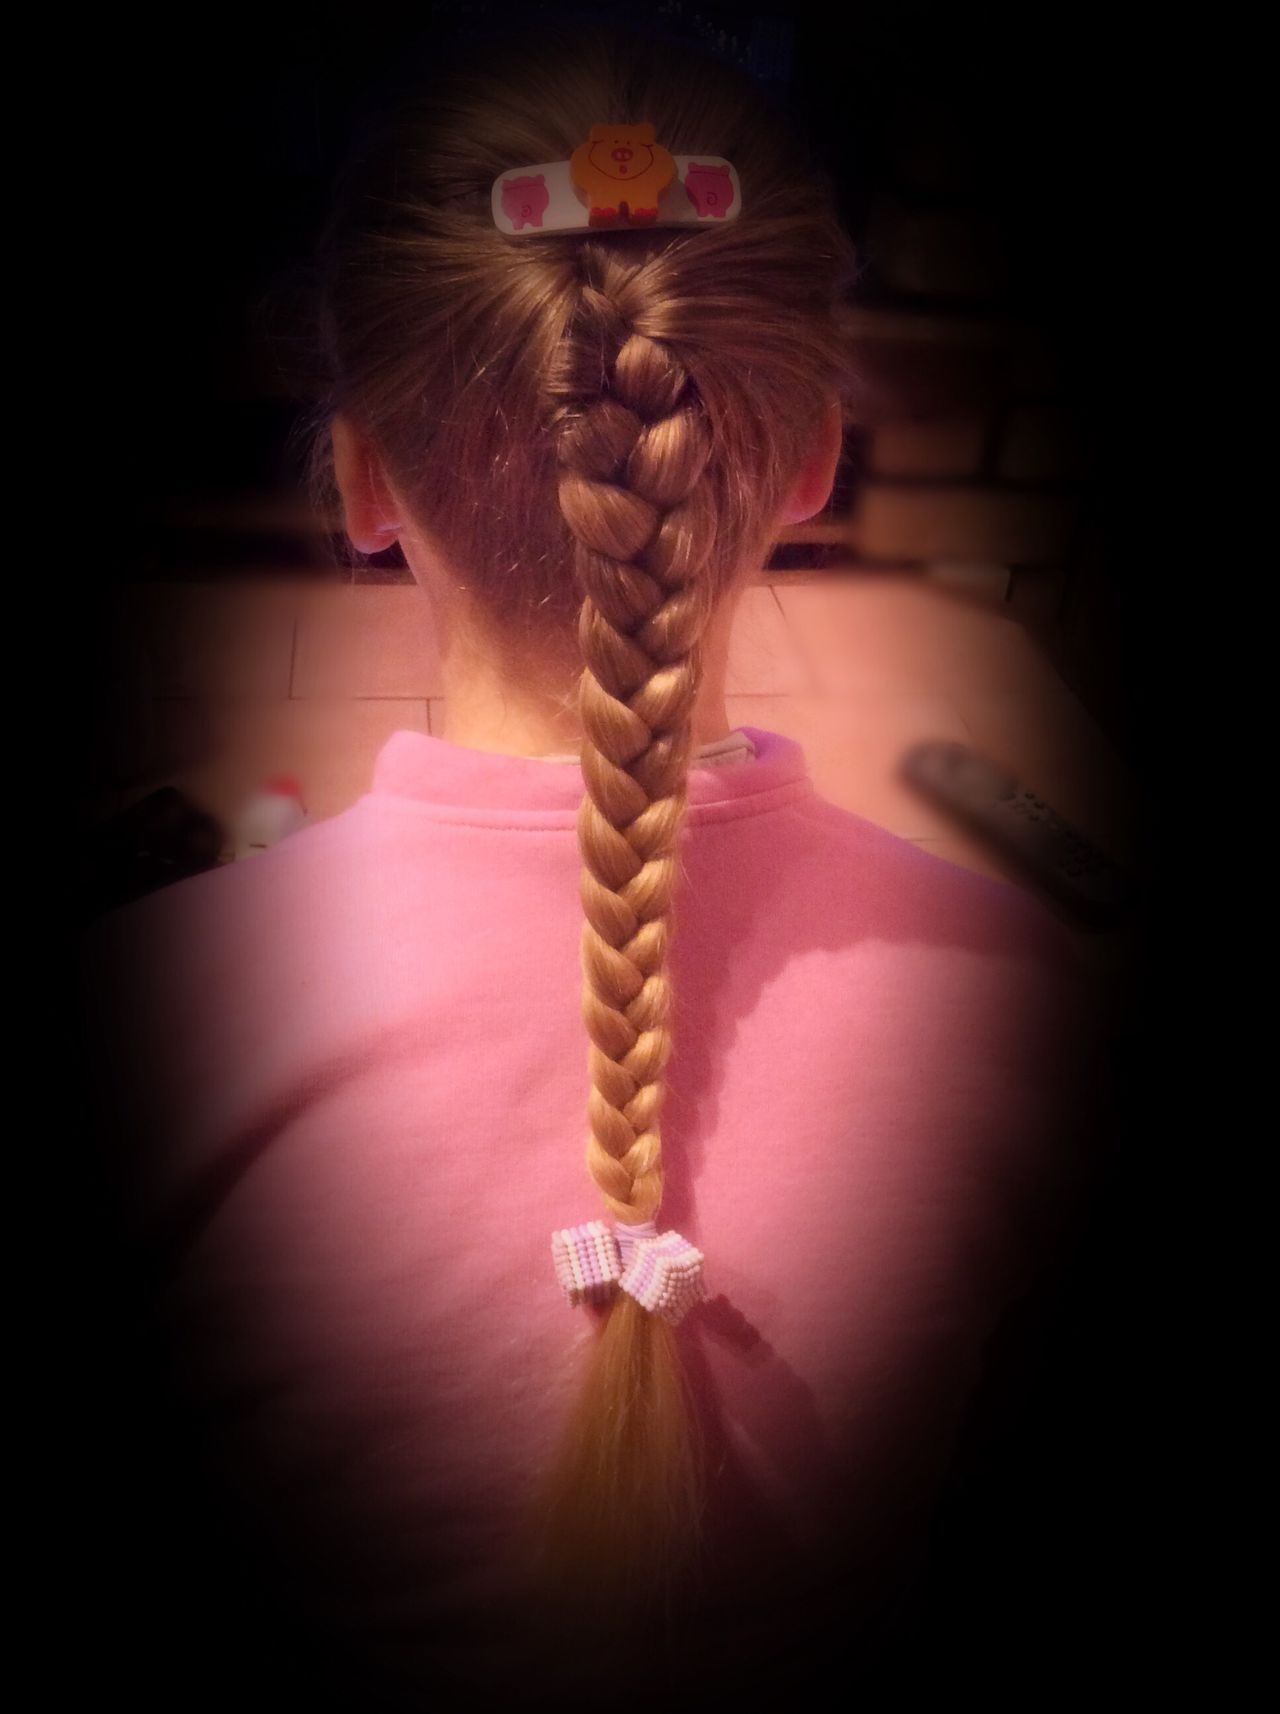 Studio Shot Braids Braided Hair Young Long Hair Braid❤ Lily May Parker Lilymayparker.blogspot.be Lily May Collection One Young Woman Only